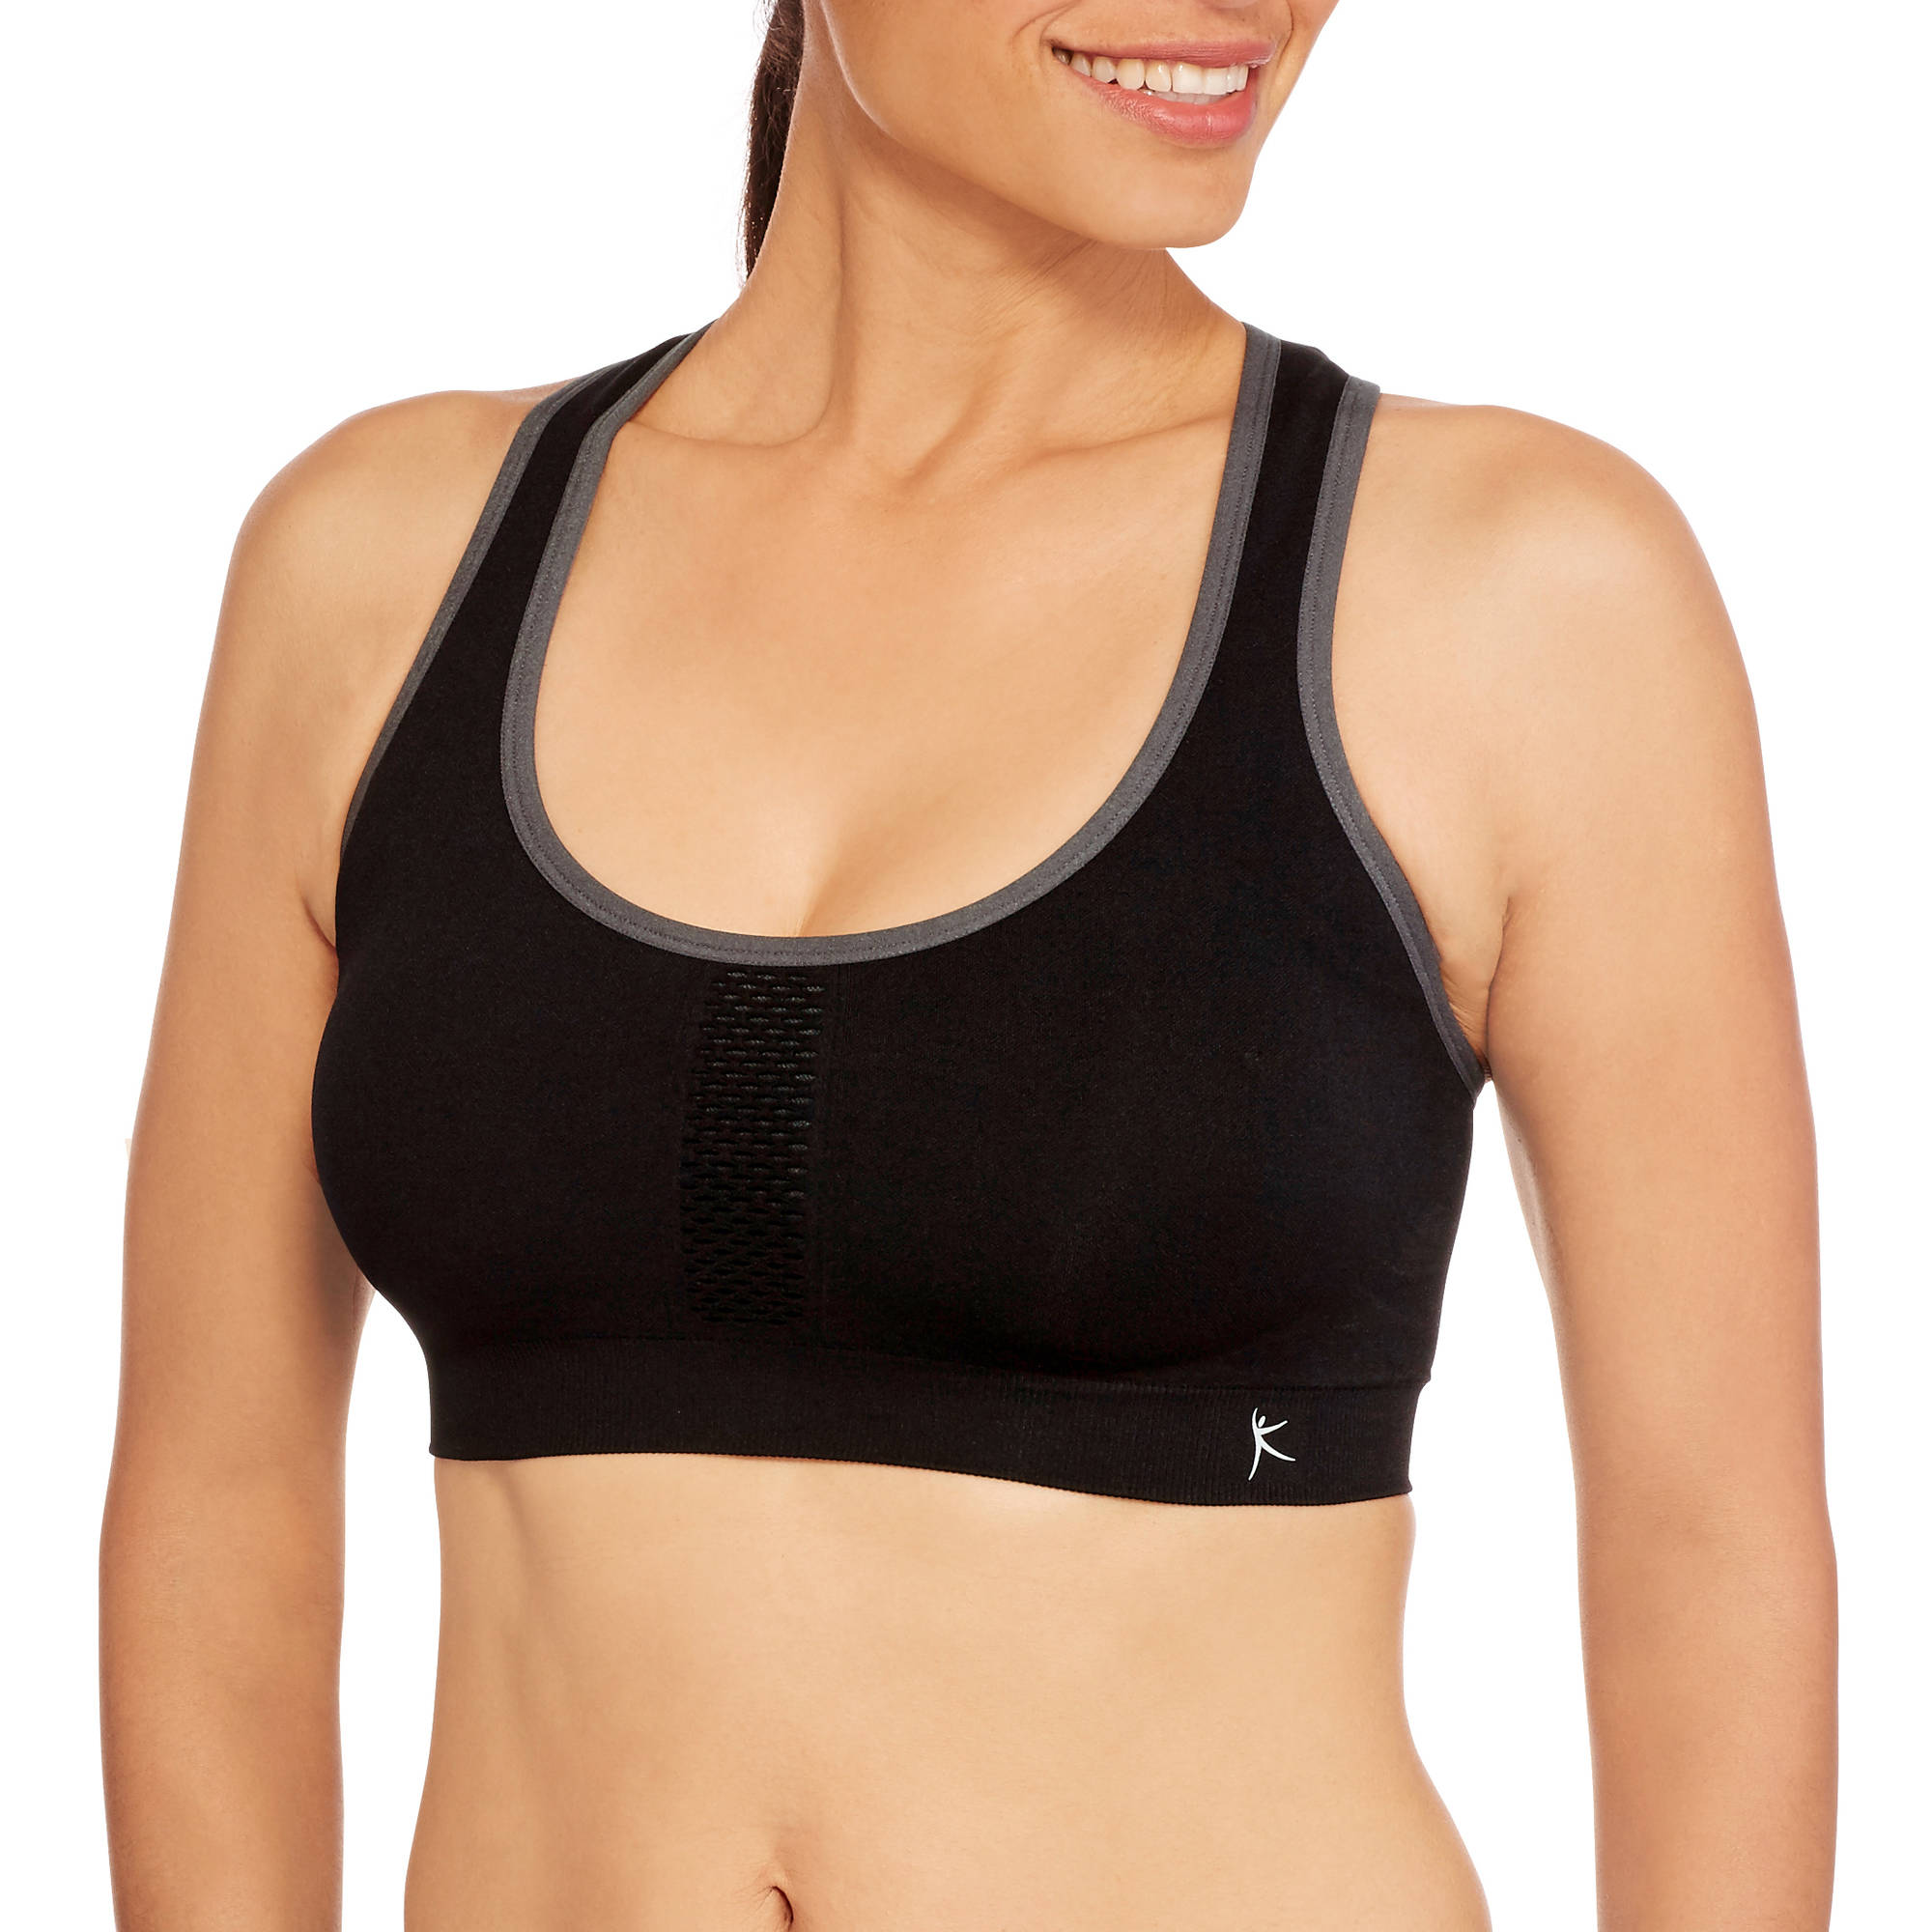 Danskin Now Women's Seamless Mesh Racerback Sports Bra